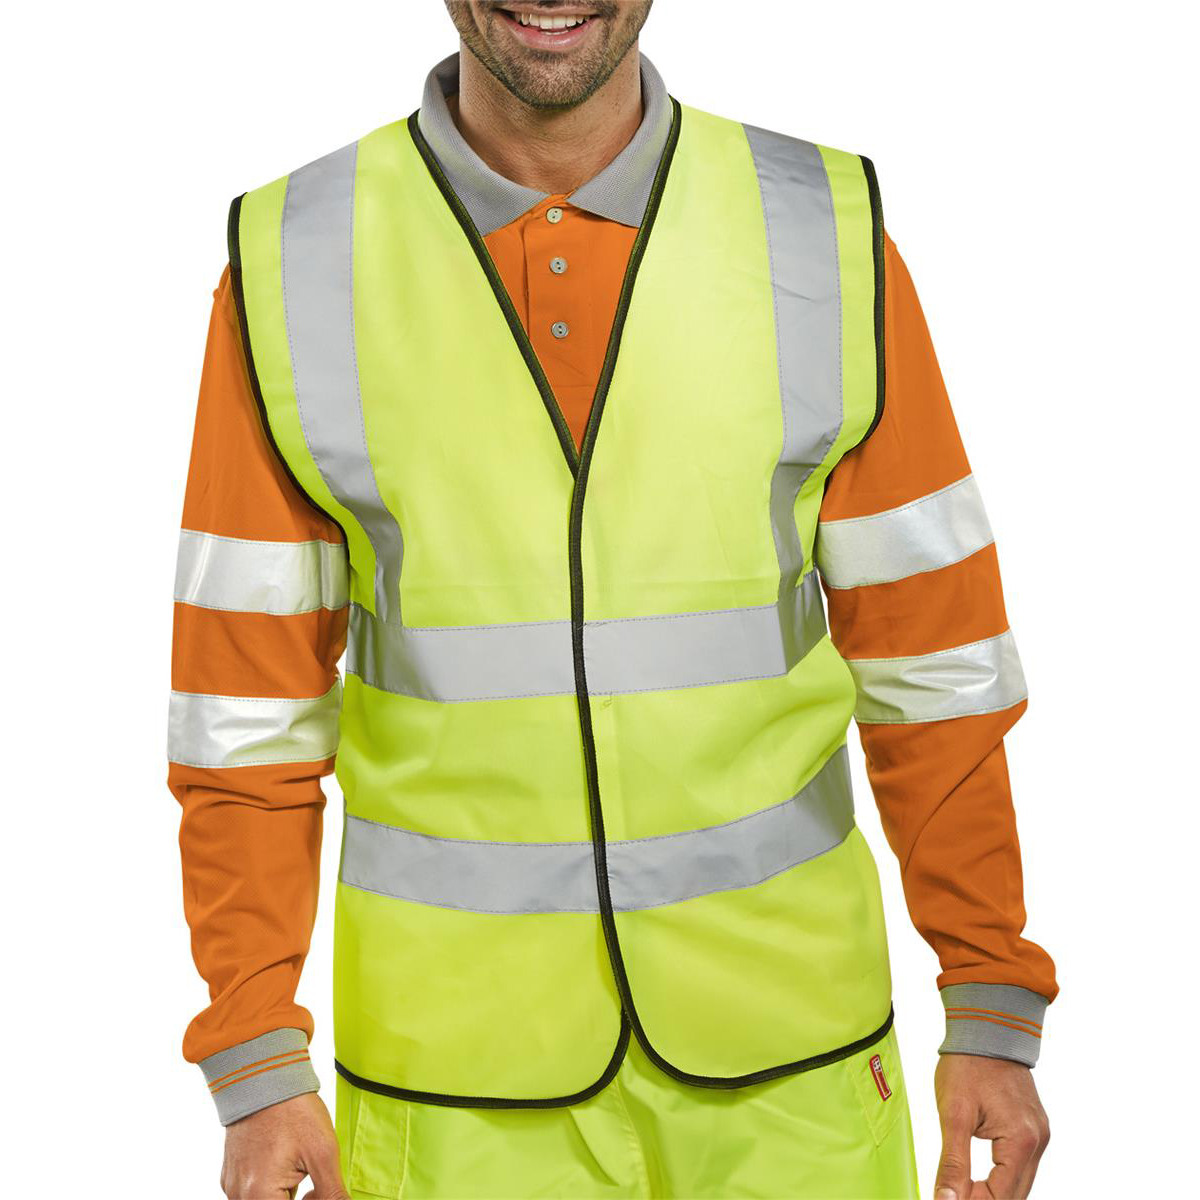 Bseen High Visibility Waistcoat Full App 2XL Yellow/Black Piping Ref WCENGXXL Up to 3 Day Leadtime